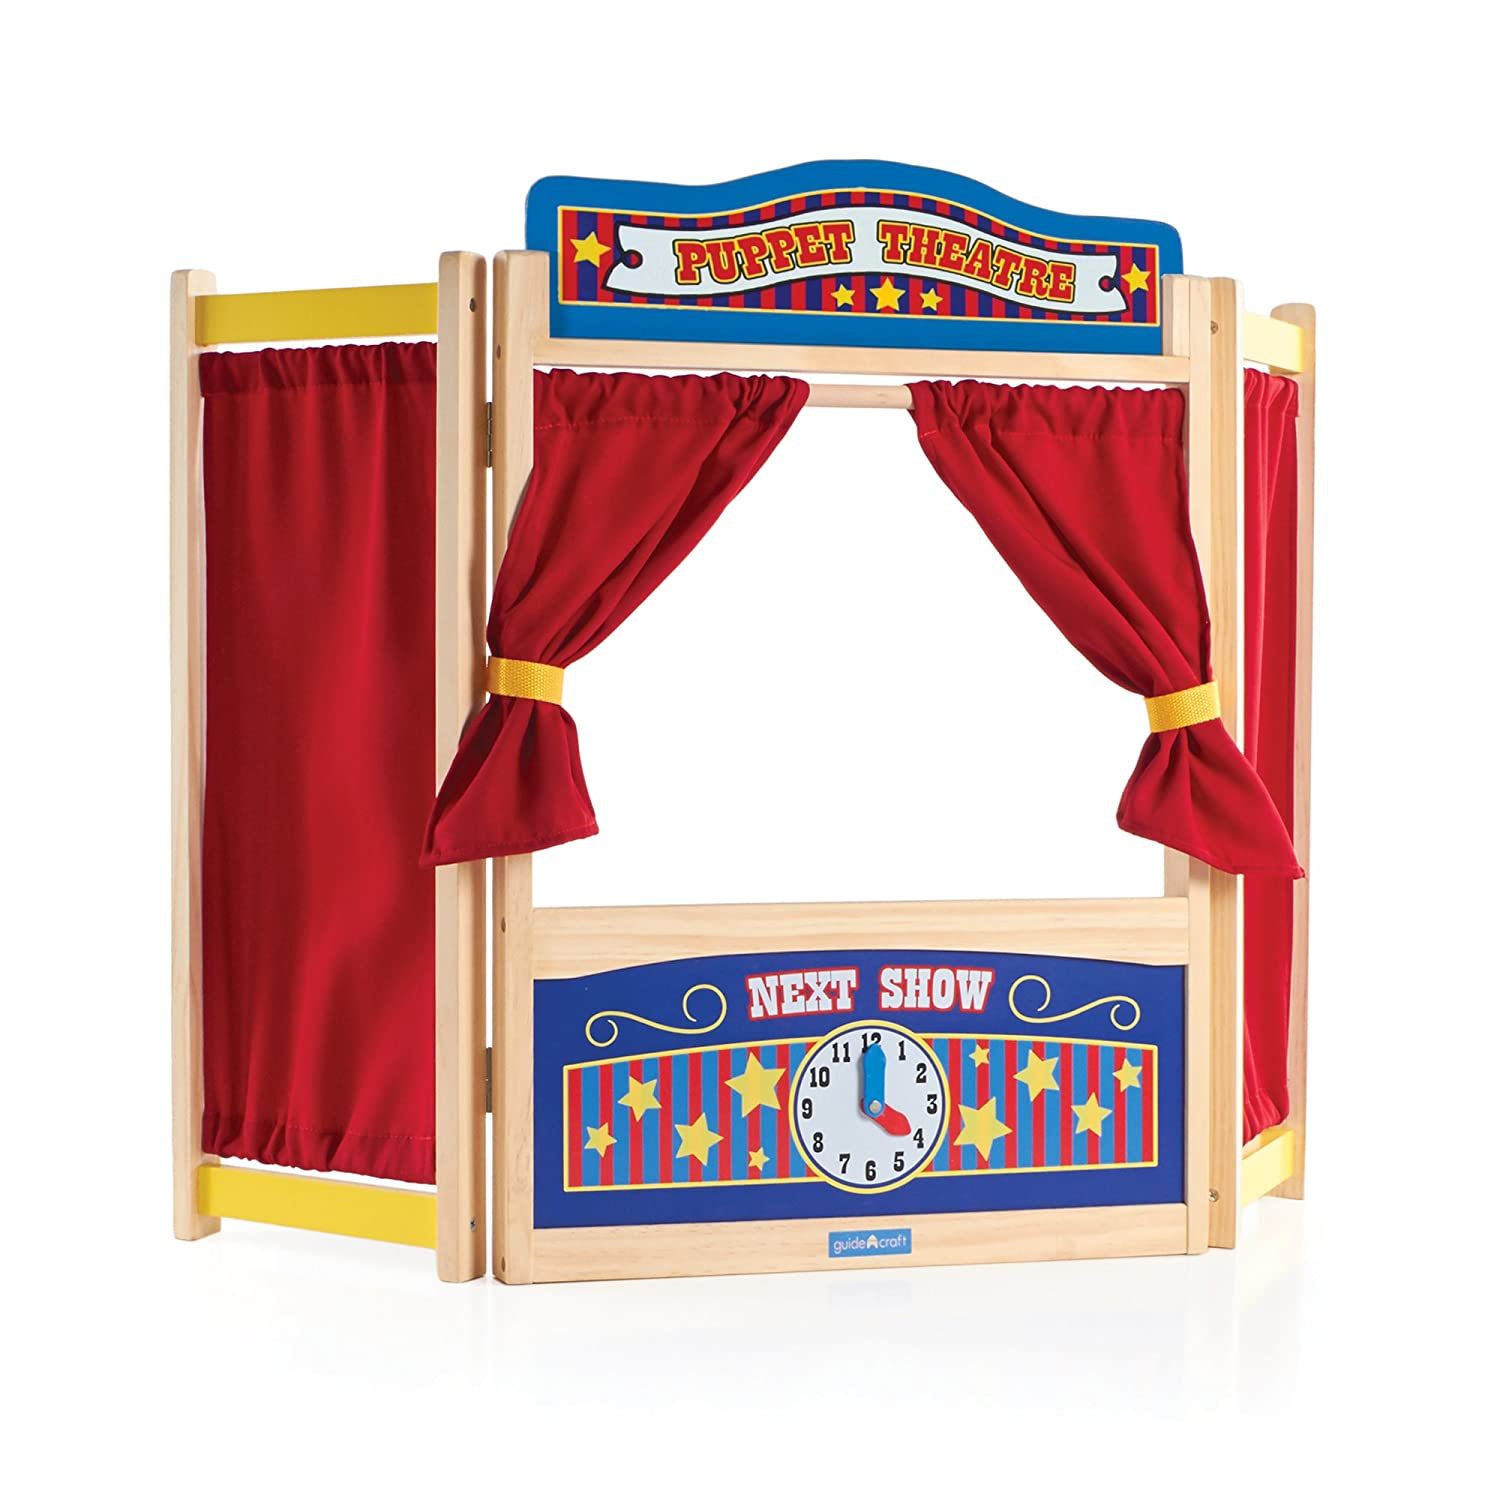 B00AE9W4Z6 Guidecraft Wooden Tabletop Puppet Theater For Kids - Toddler's Foldable Dramatic Play Imaginative Theater W/ Chalkboard, Curtains and Clock 81pI7wAEwPL